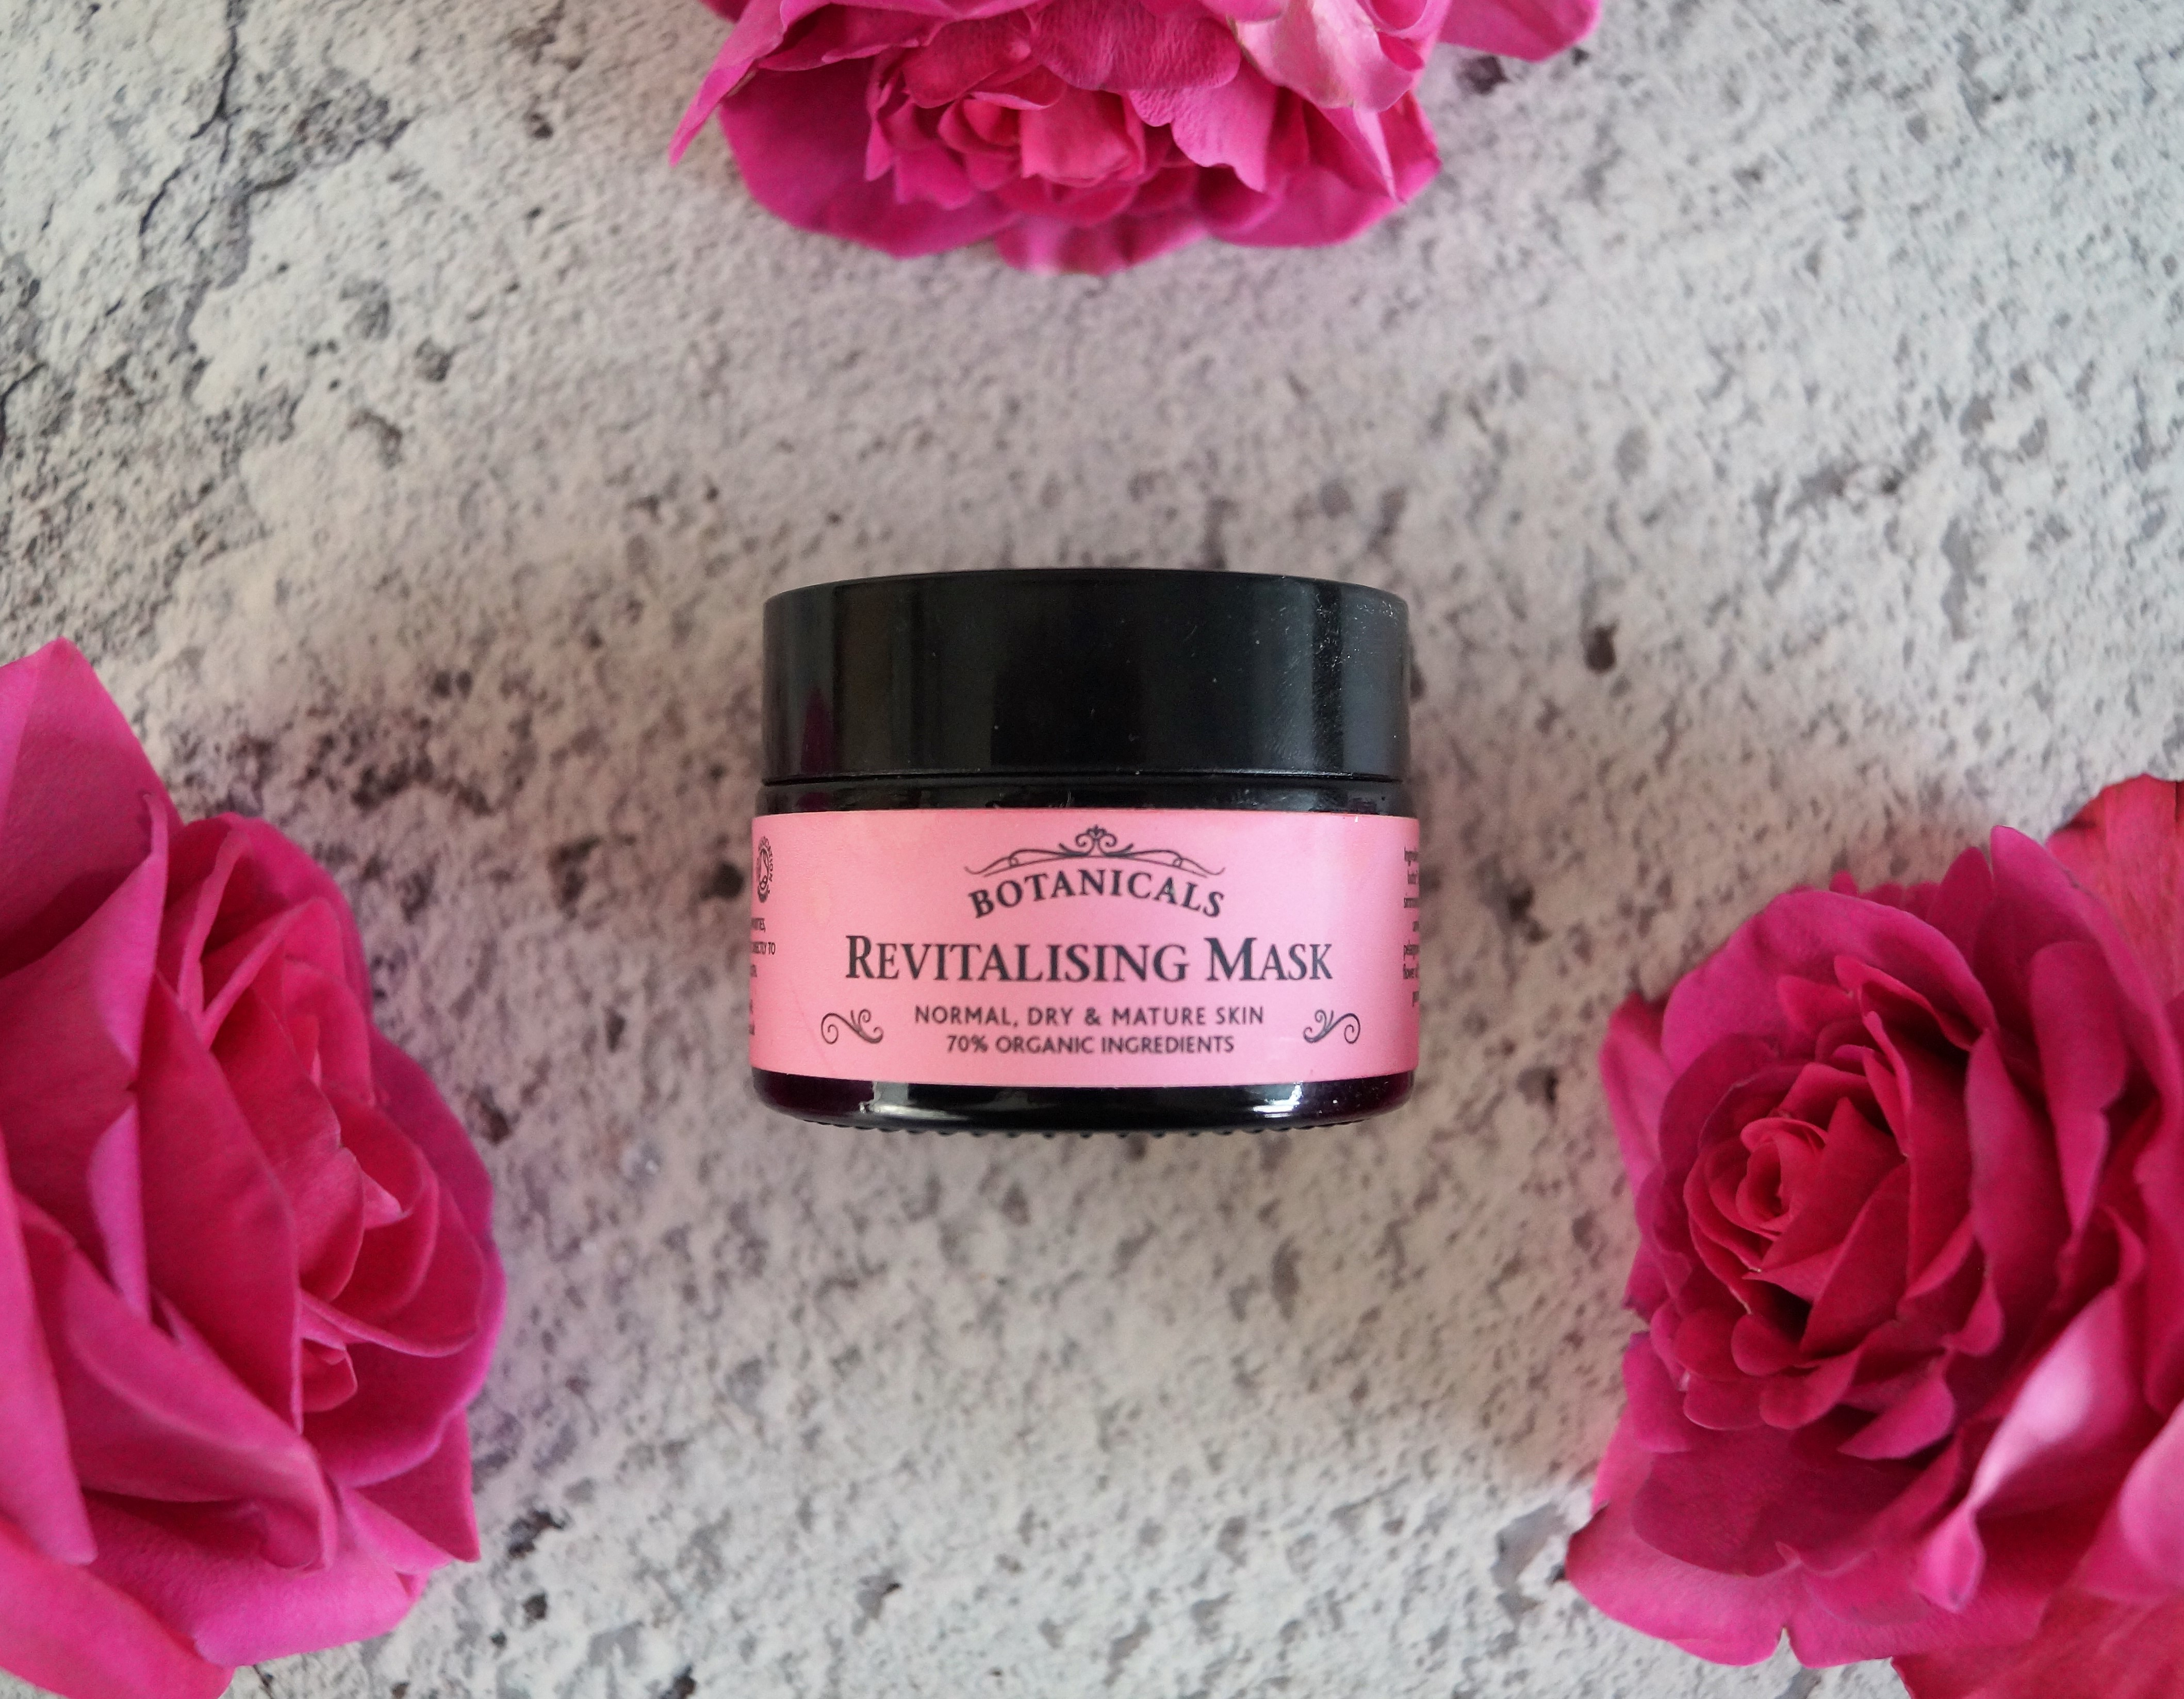 Botianicals Revitalising Mask